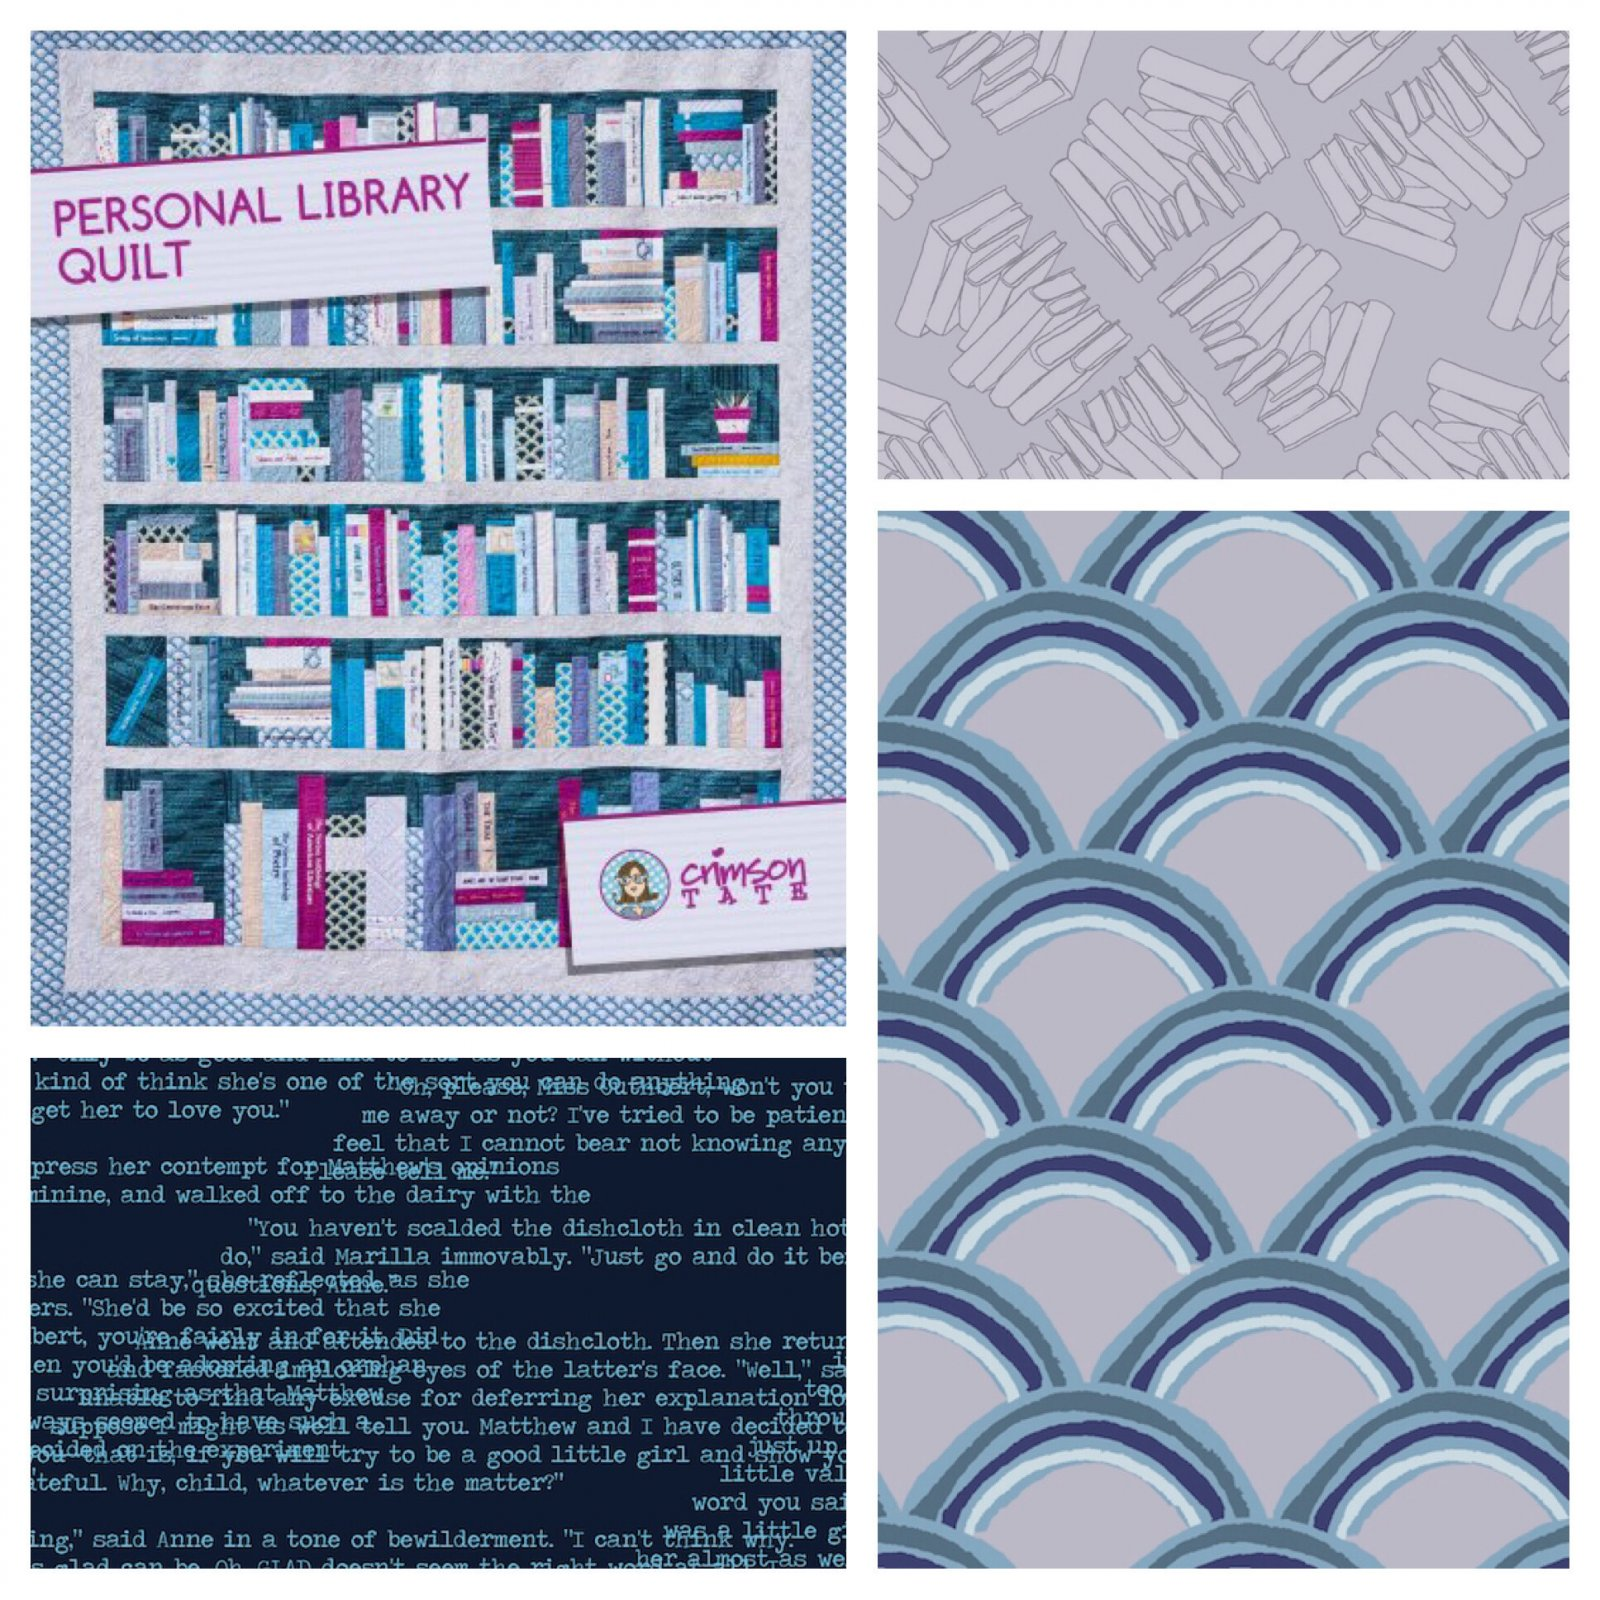 Personal Library Quilt Finishing Kit